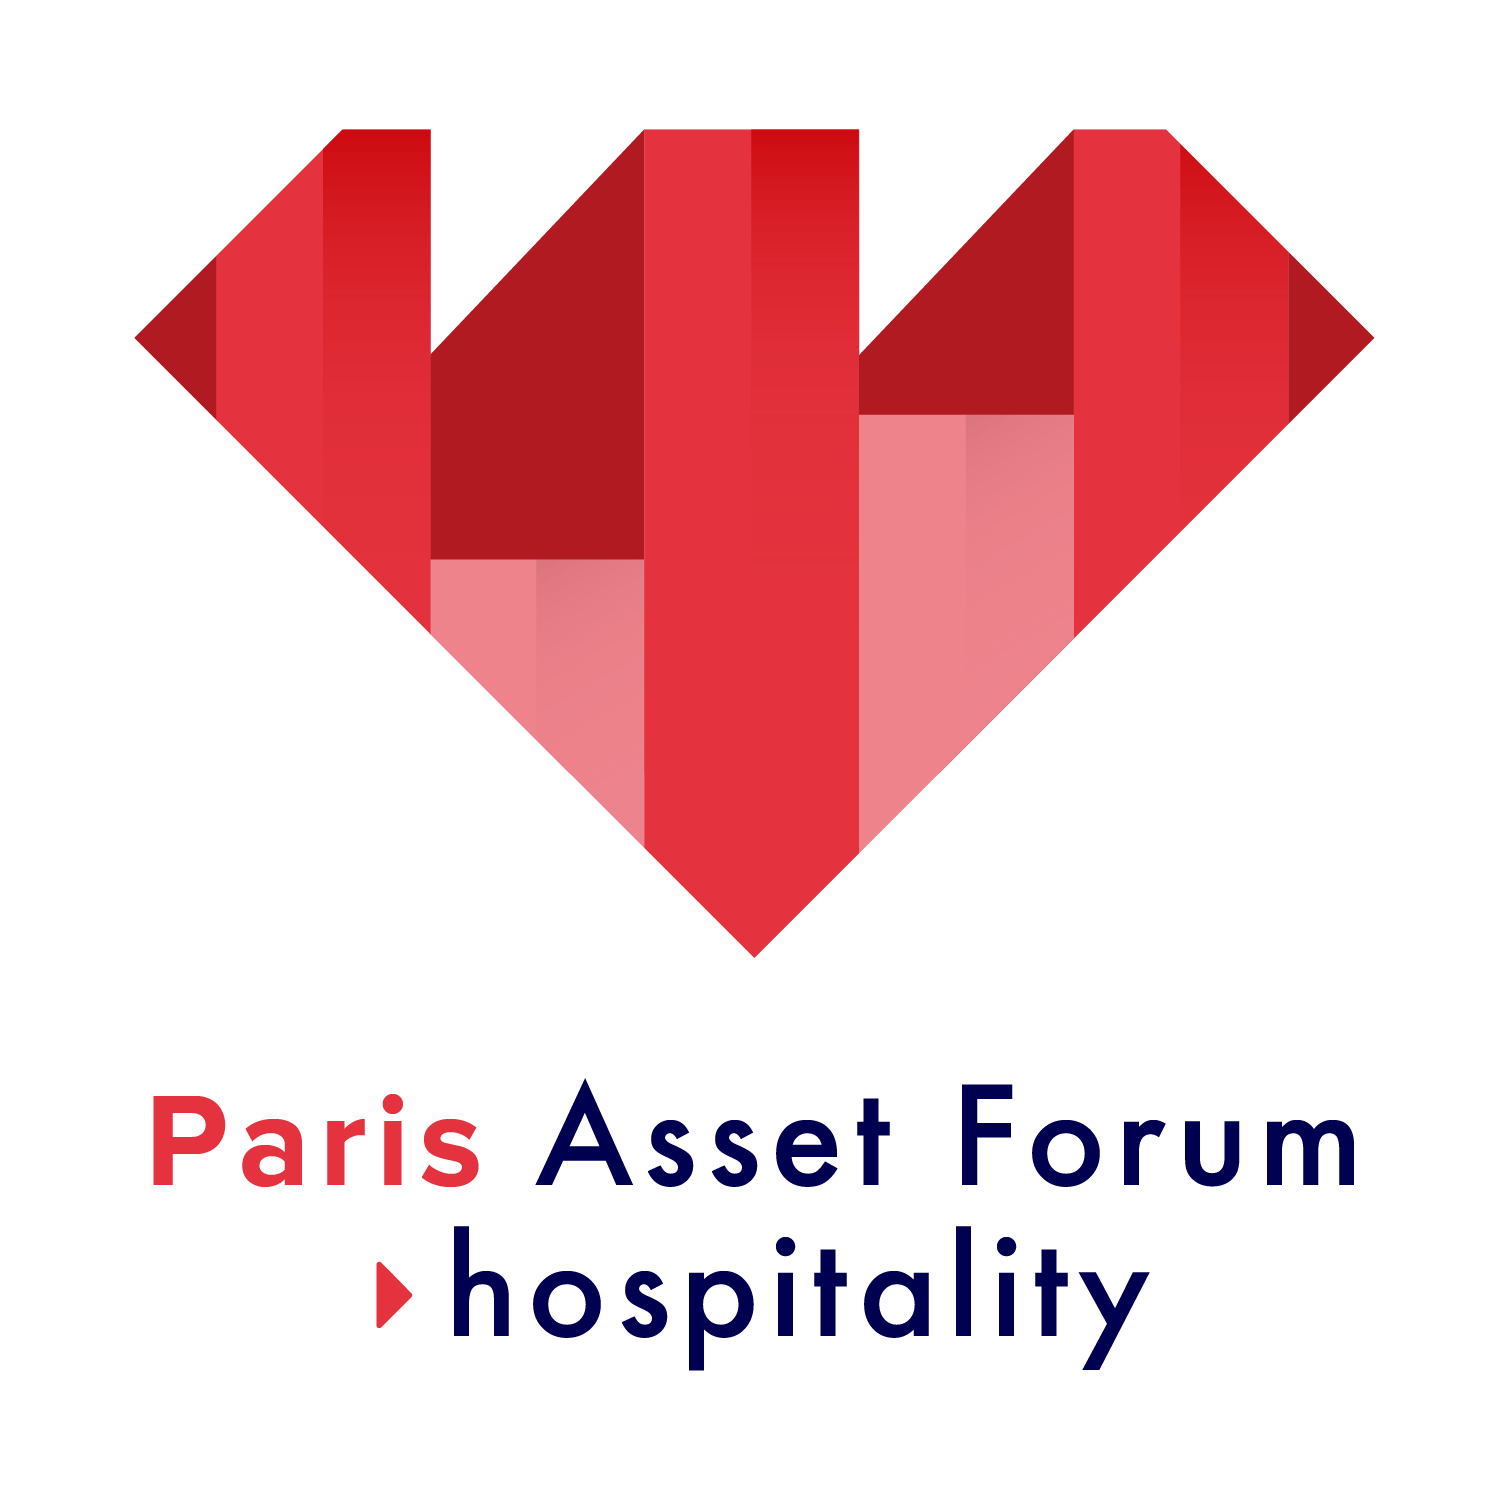 Paris Asset Forum Hospitality